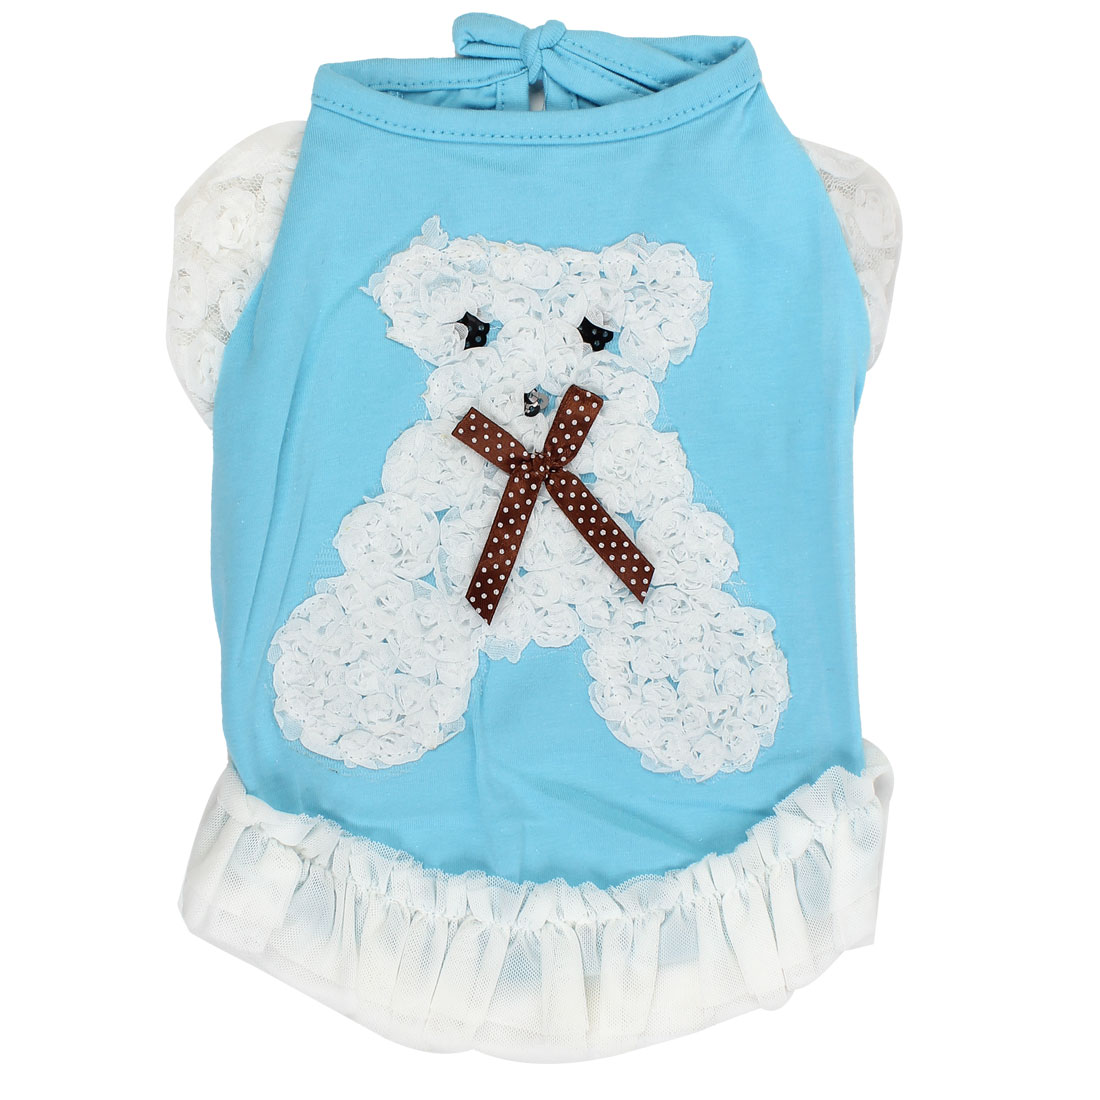 Pet Dog Summer Lace Bear Design T-Shirts Apparel Clothing Costume Blue Size XL